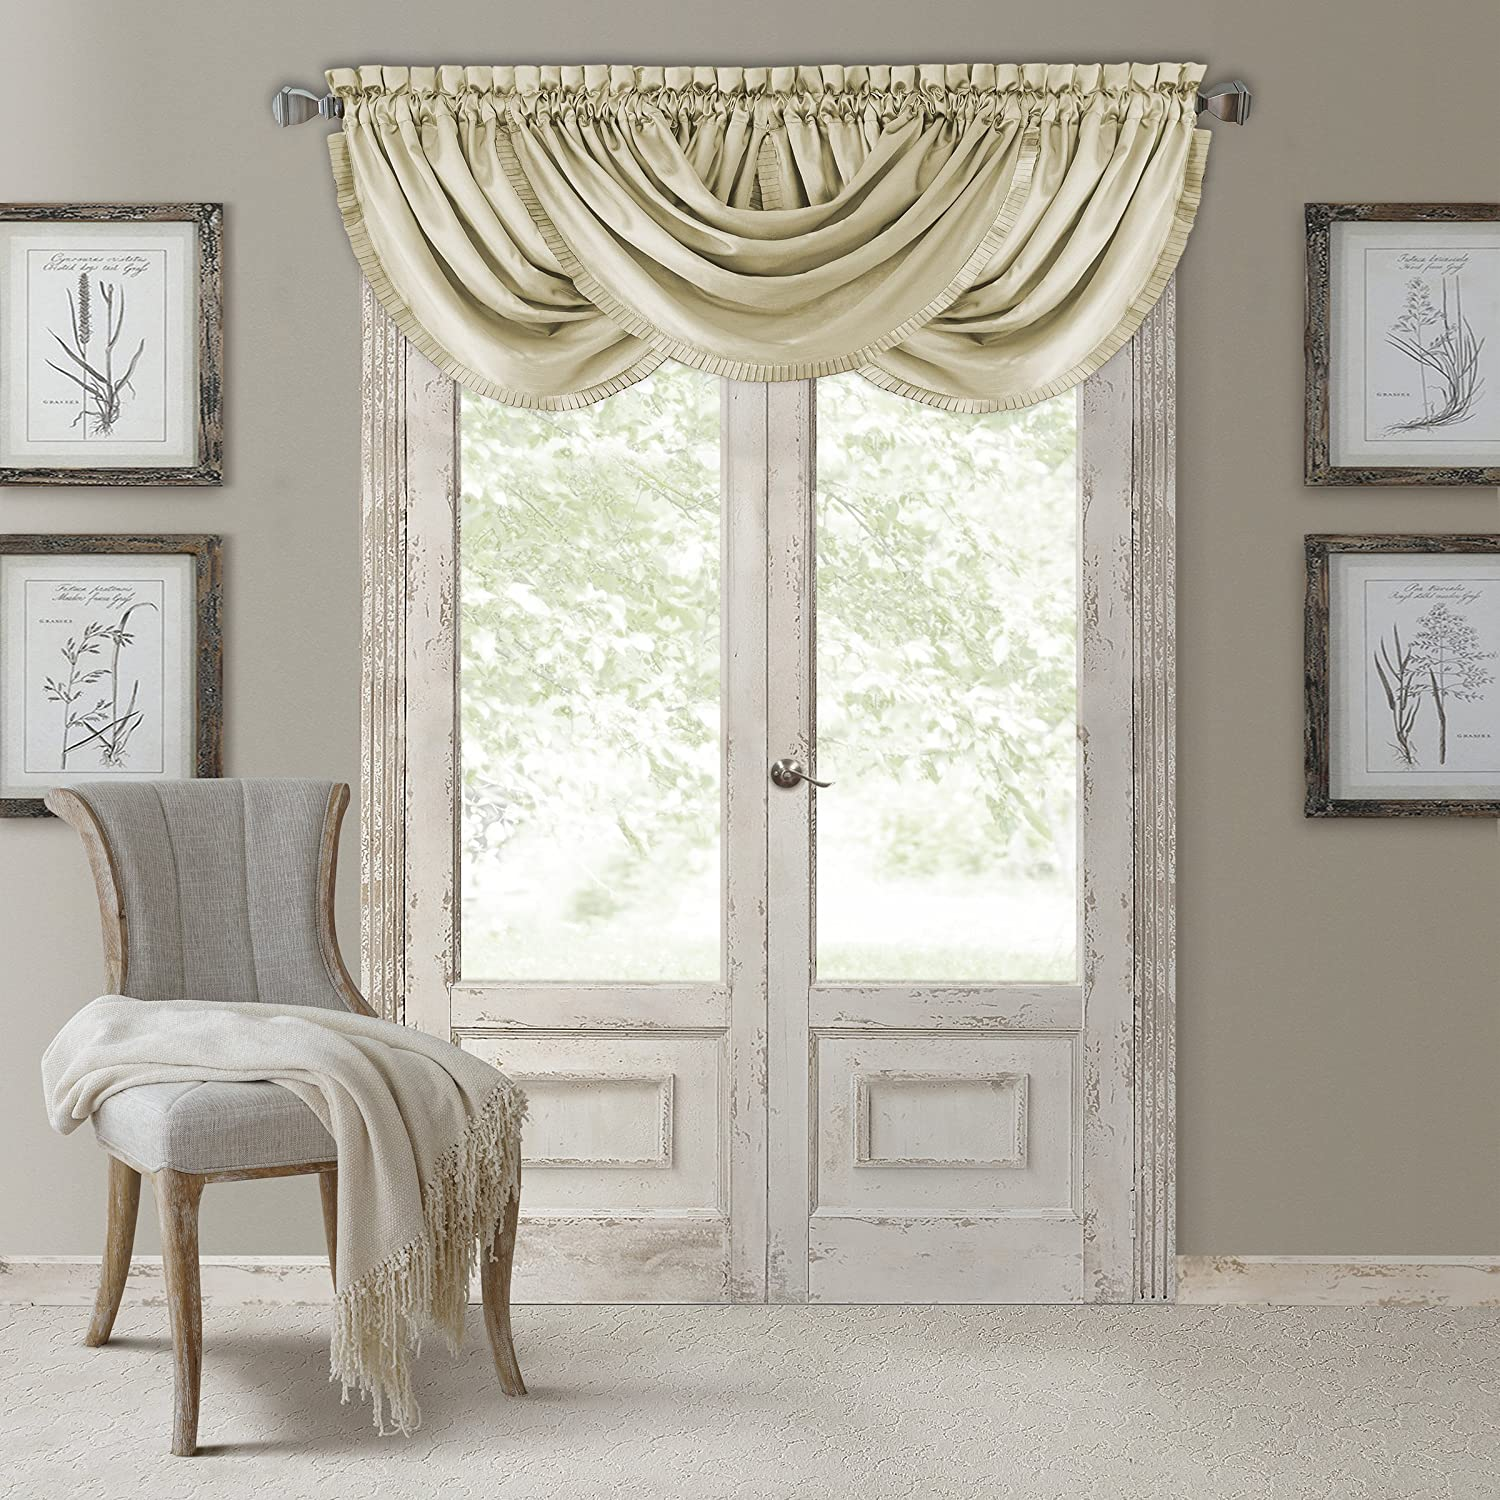 """Elrene Home Fashions Versailles Faux Silk Room Darkening & Energy Efficient Lined Rod Pocket Window Curtain Drape Pleated Solid Waterfall Valance, 52"""" x 36"""" (1, Ivory"""